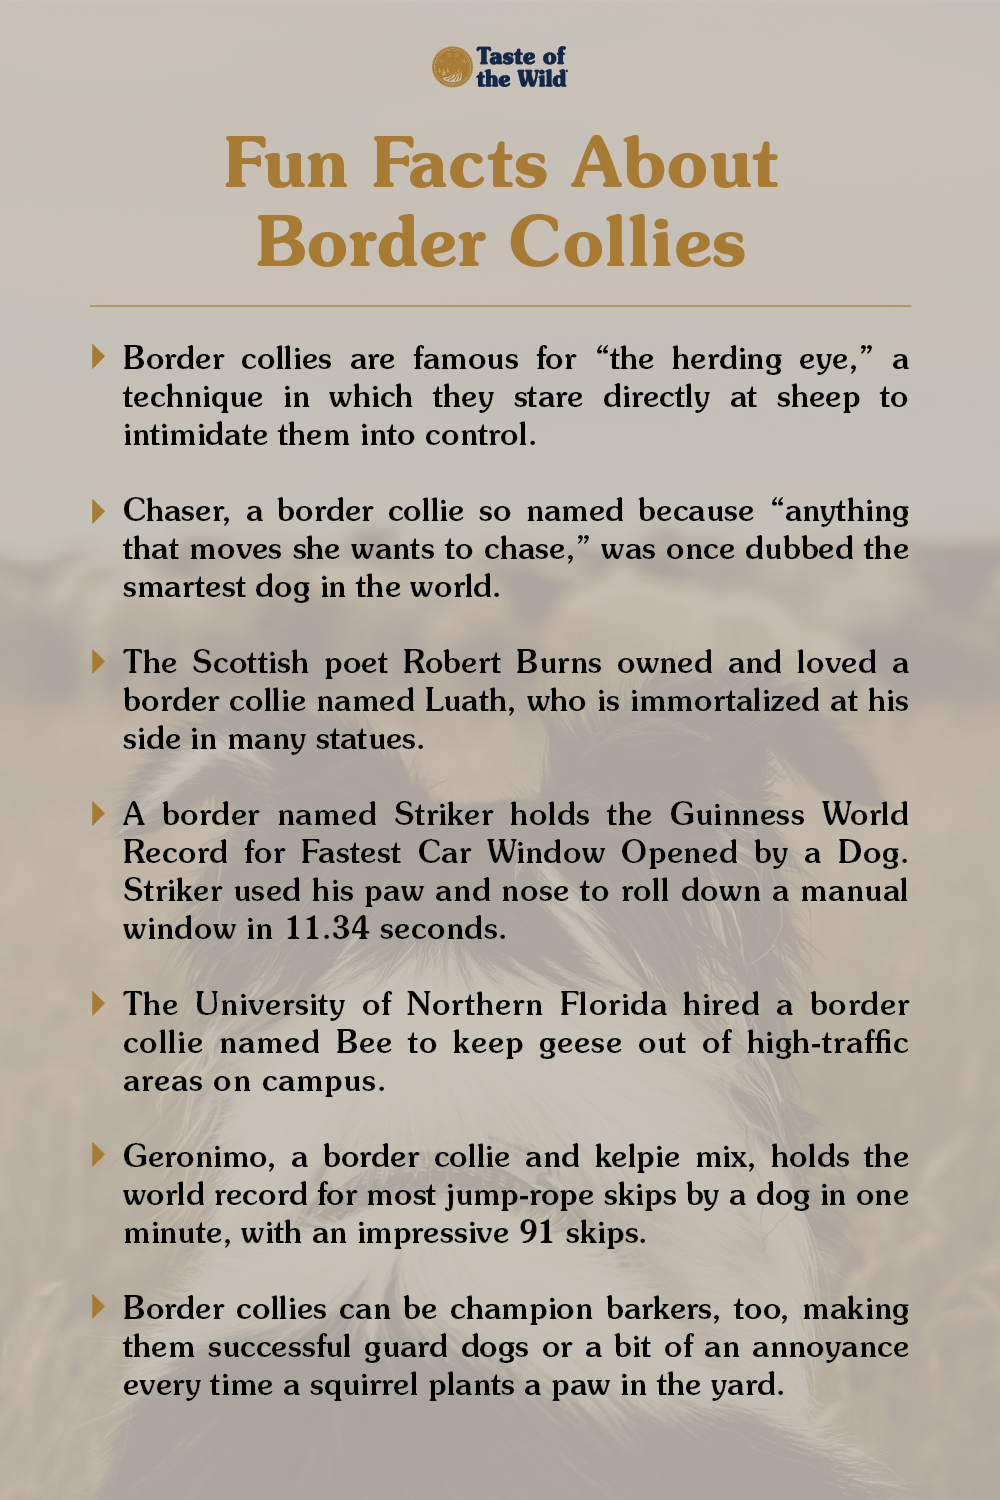 Fun Facts about Border Collies Infographic   Taste of the Wild